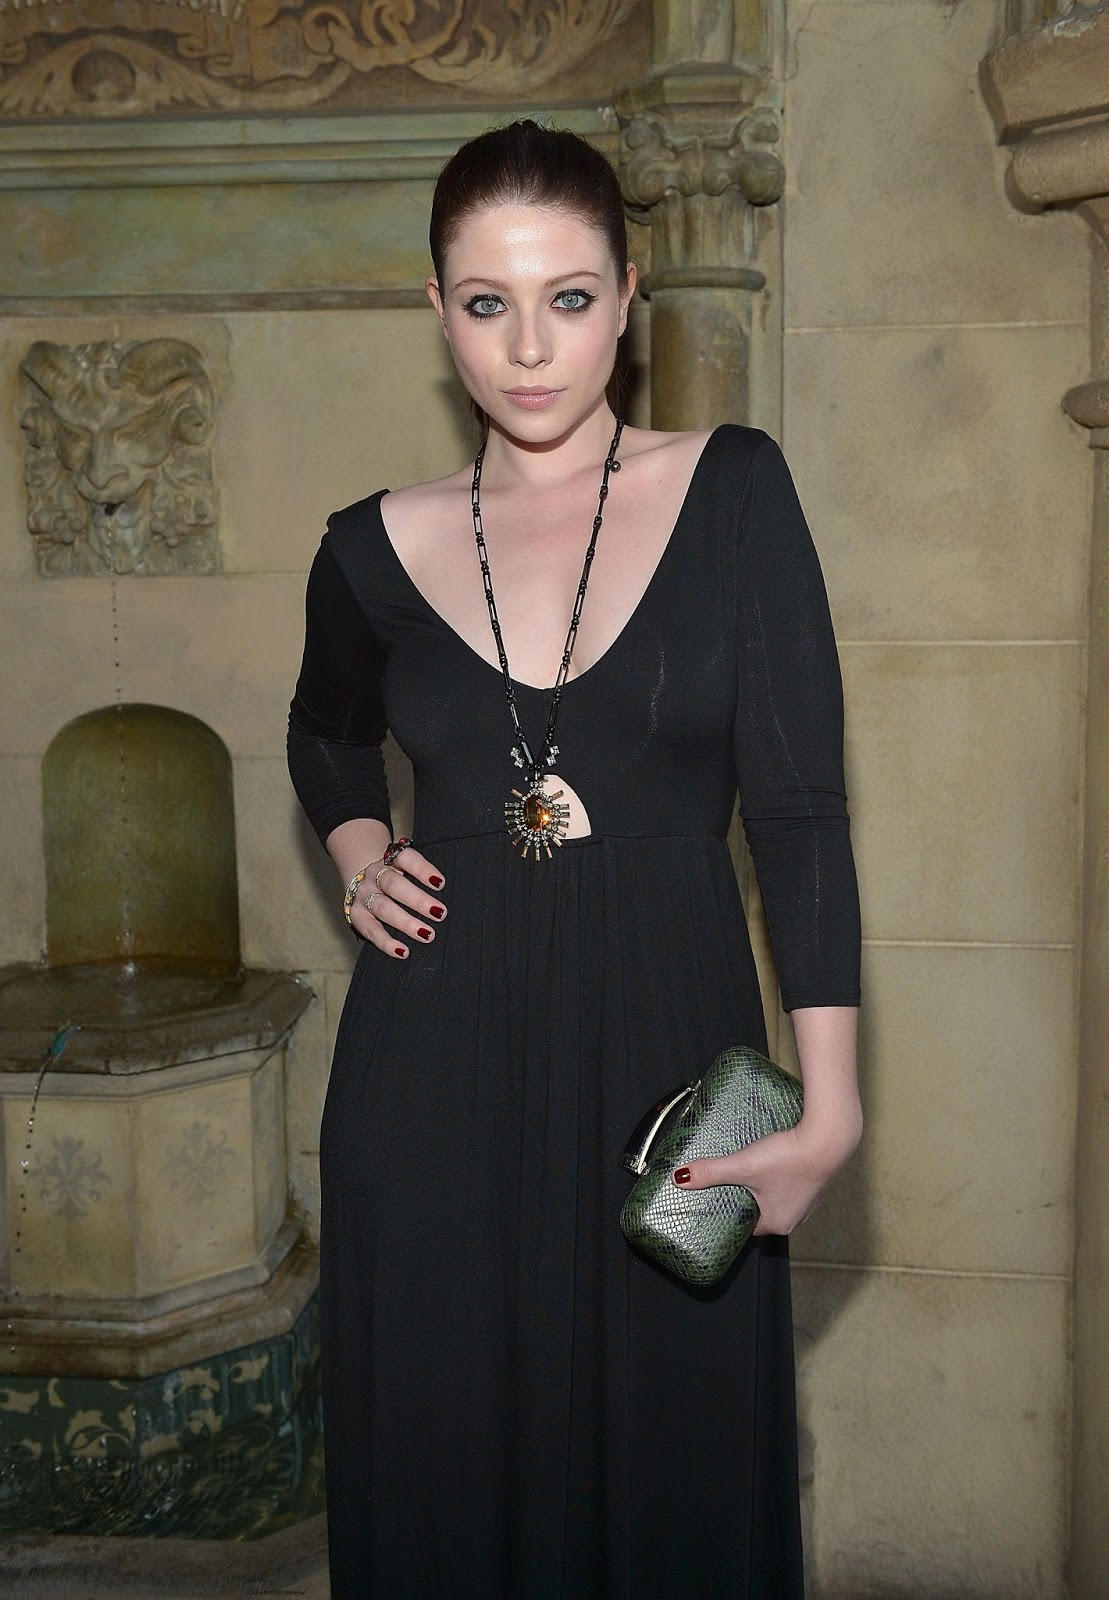 Michelle Trachtenberg Biography, Michelle Trachtenberg Hot, Michelle